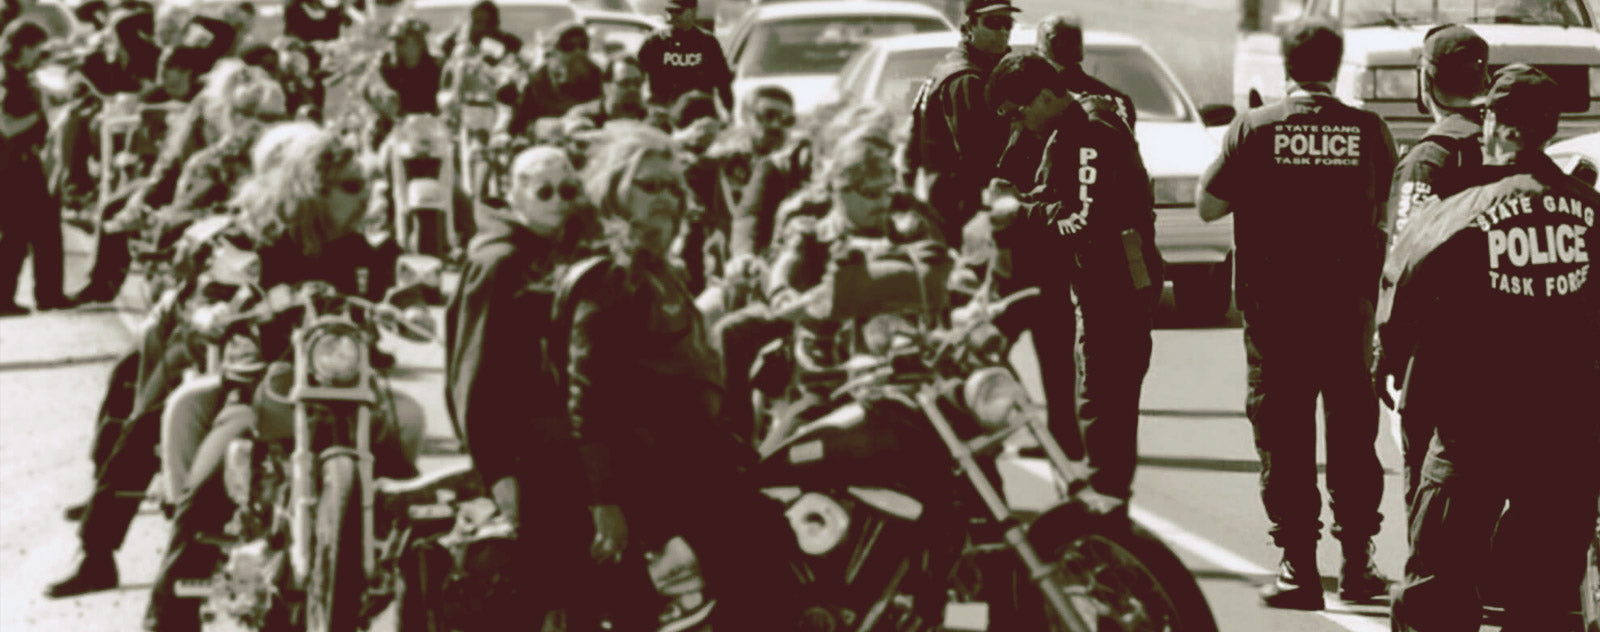 Gang bikers américains